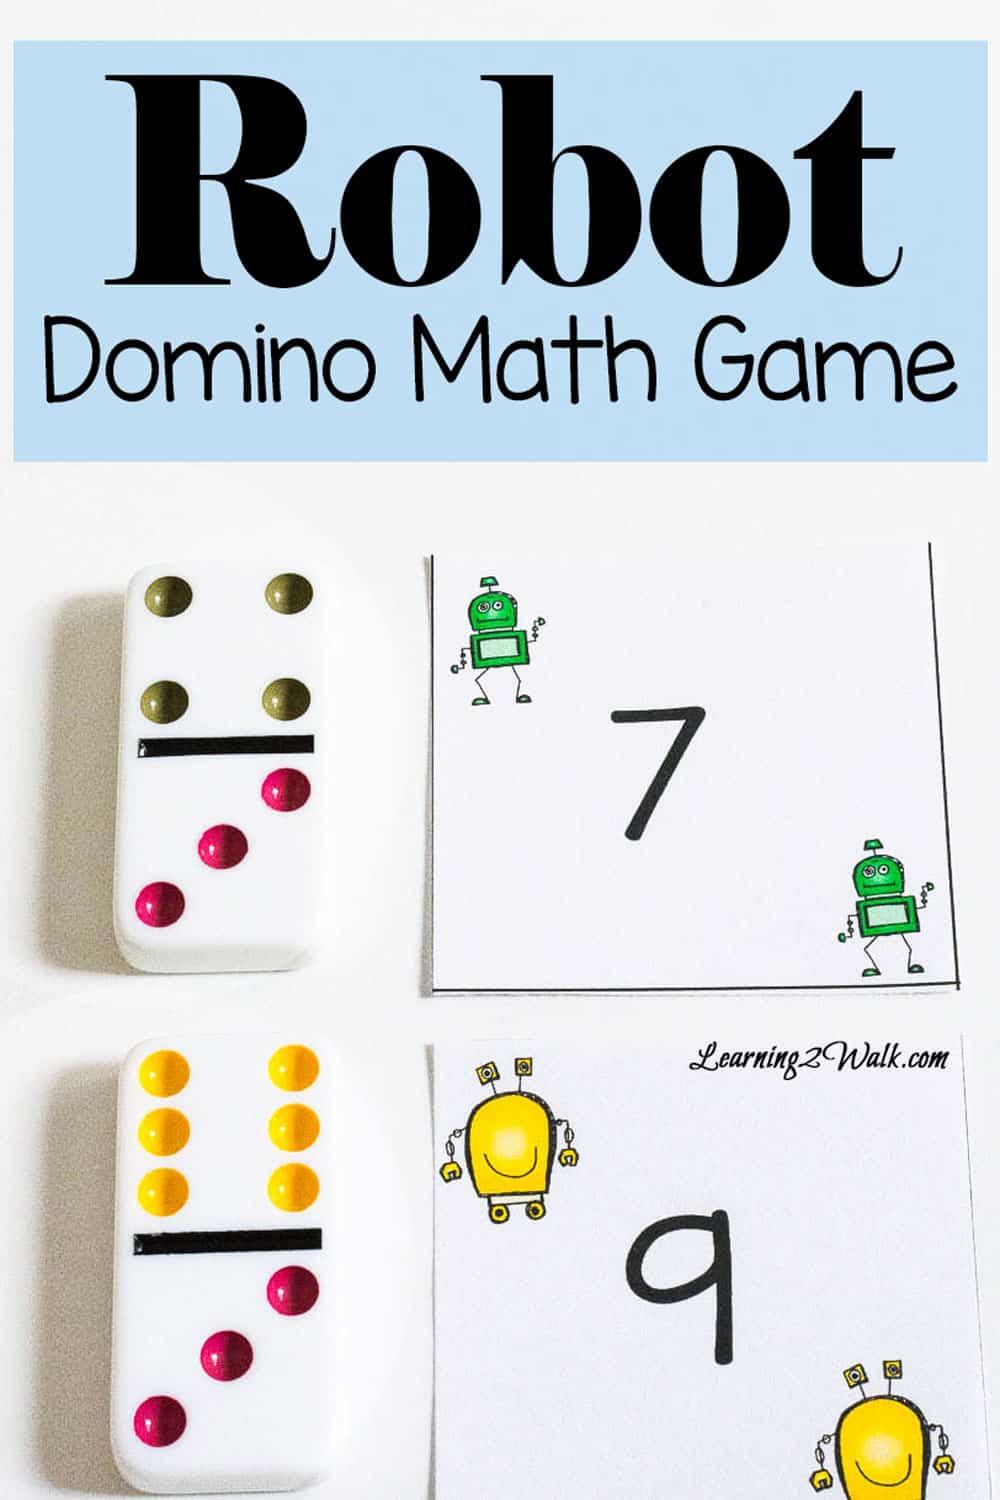 Robot Domino Math Game